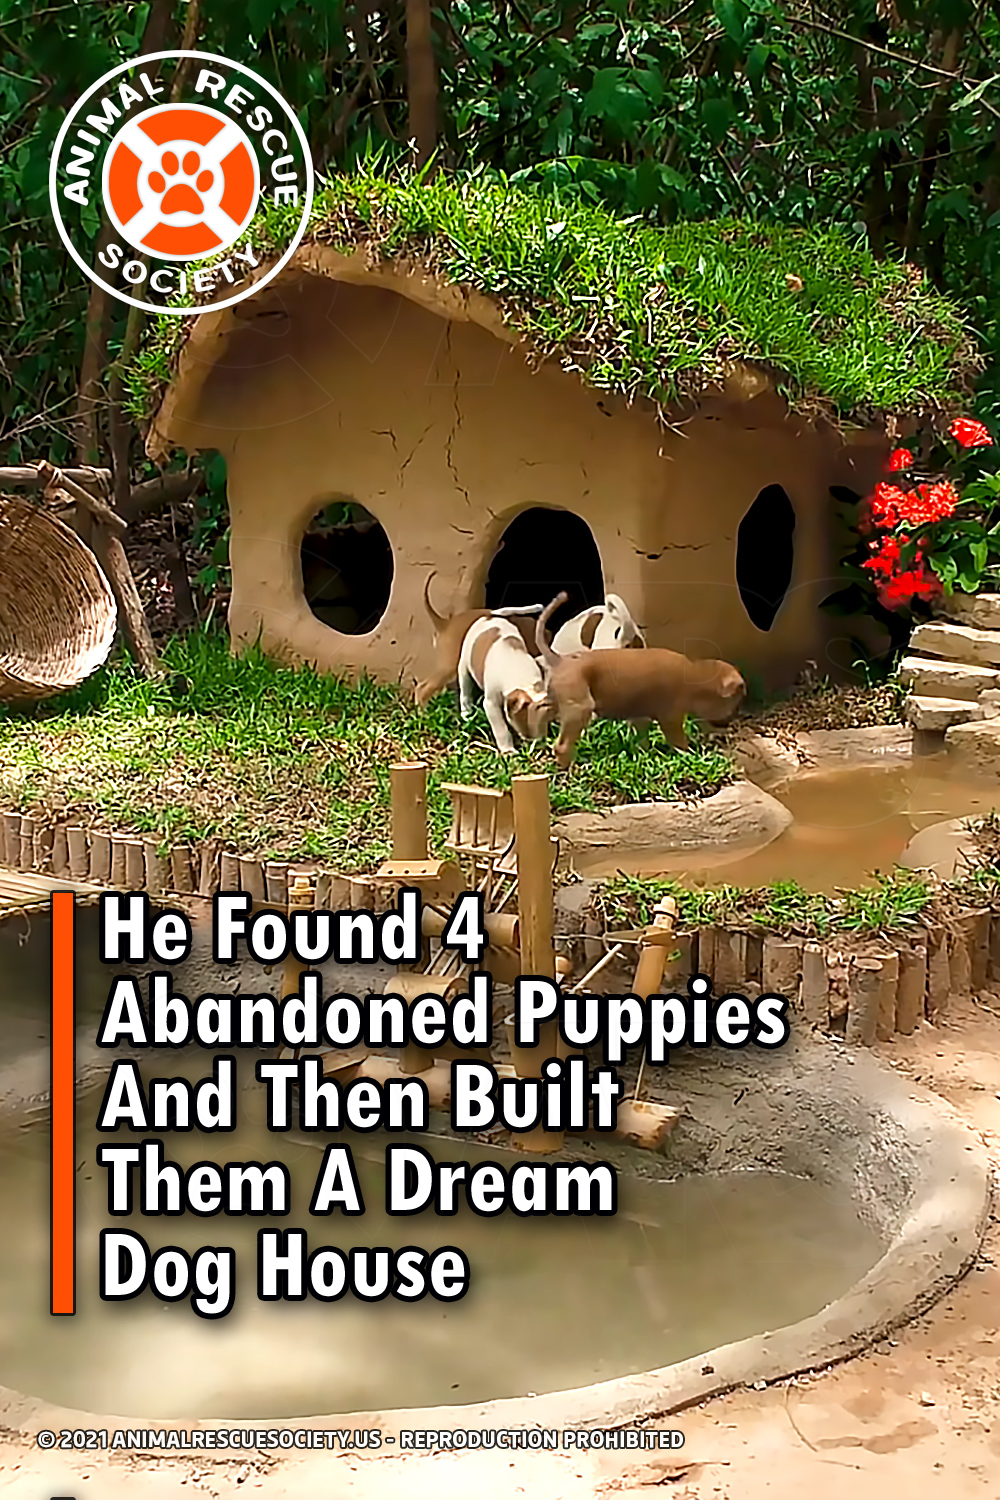 He Found 4 Abandoned Puppies And Then Built Them A Dream Dog House